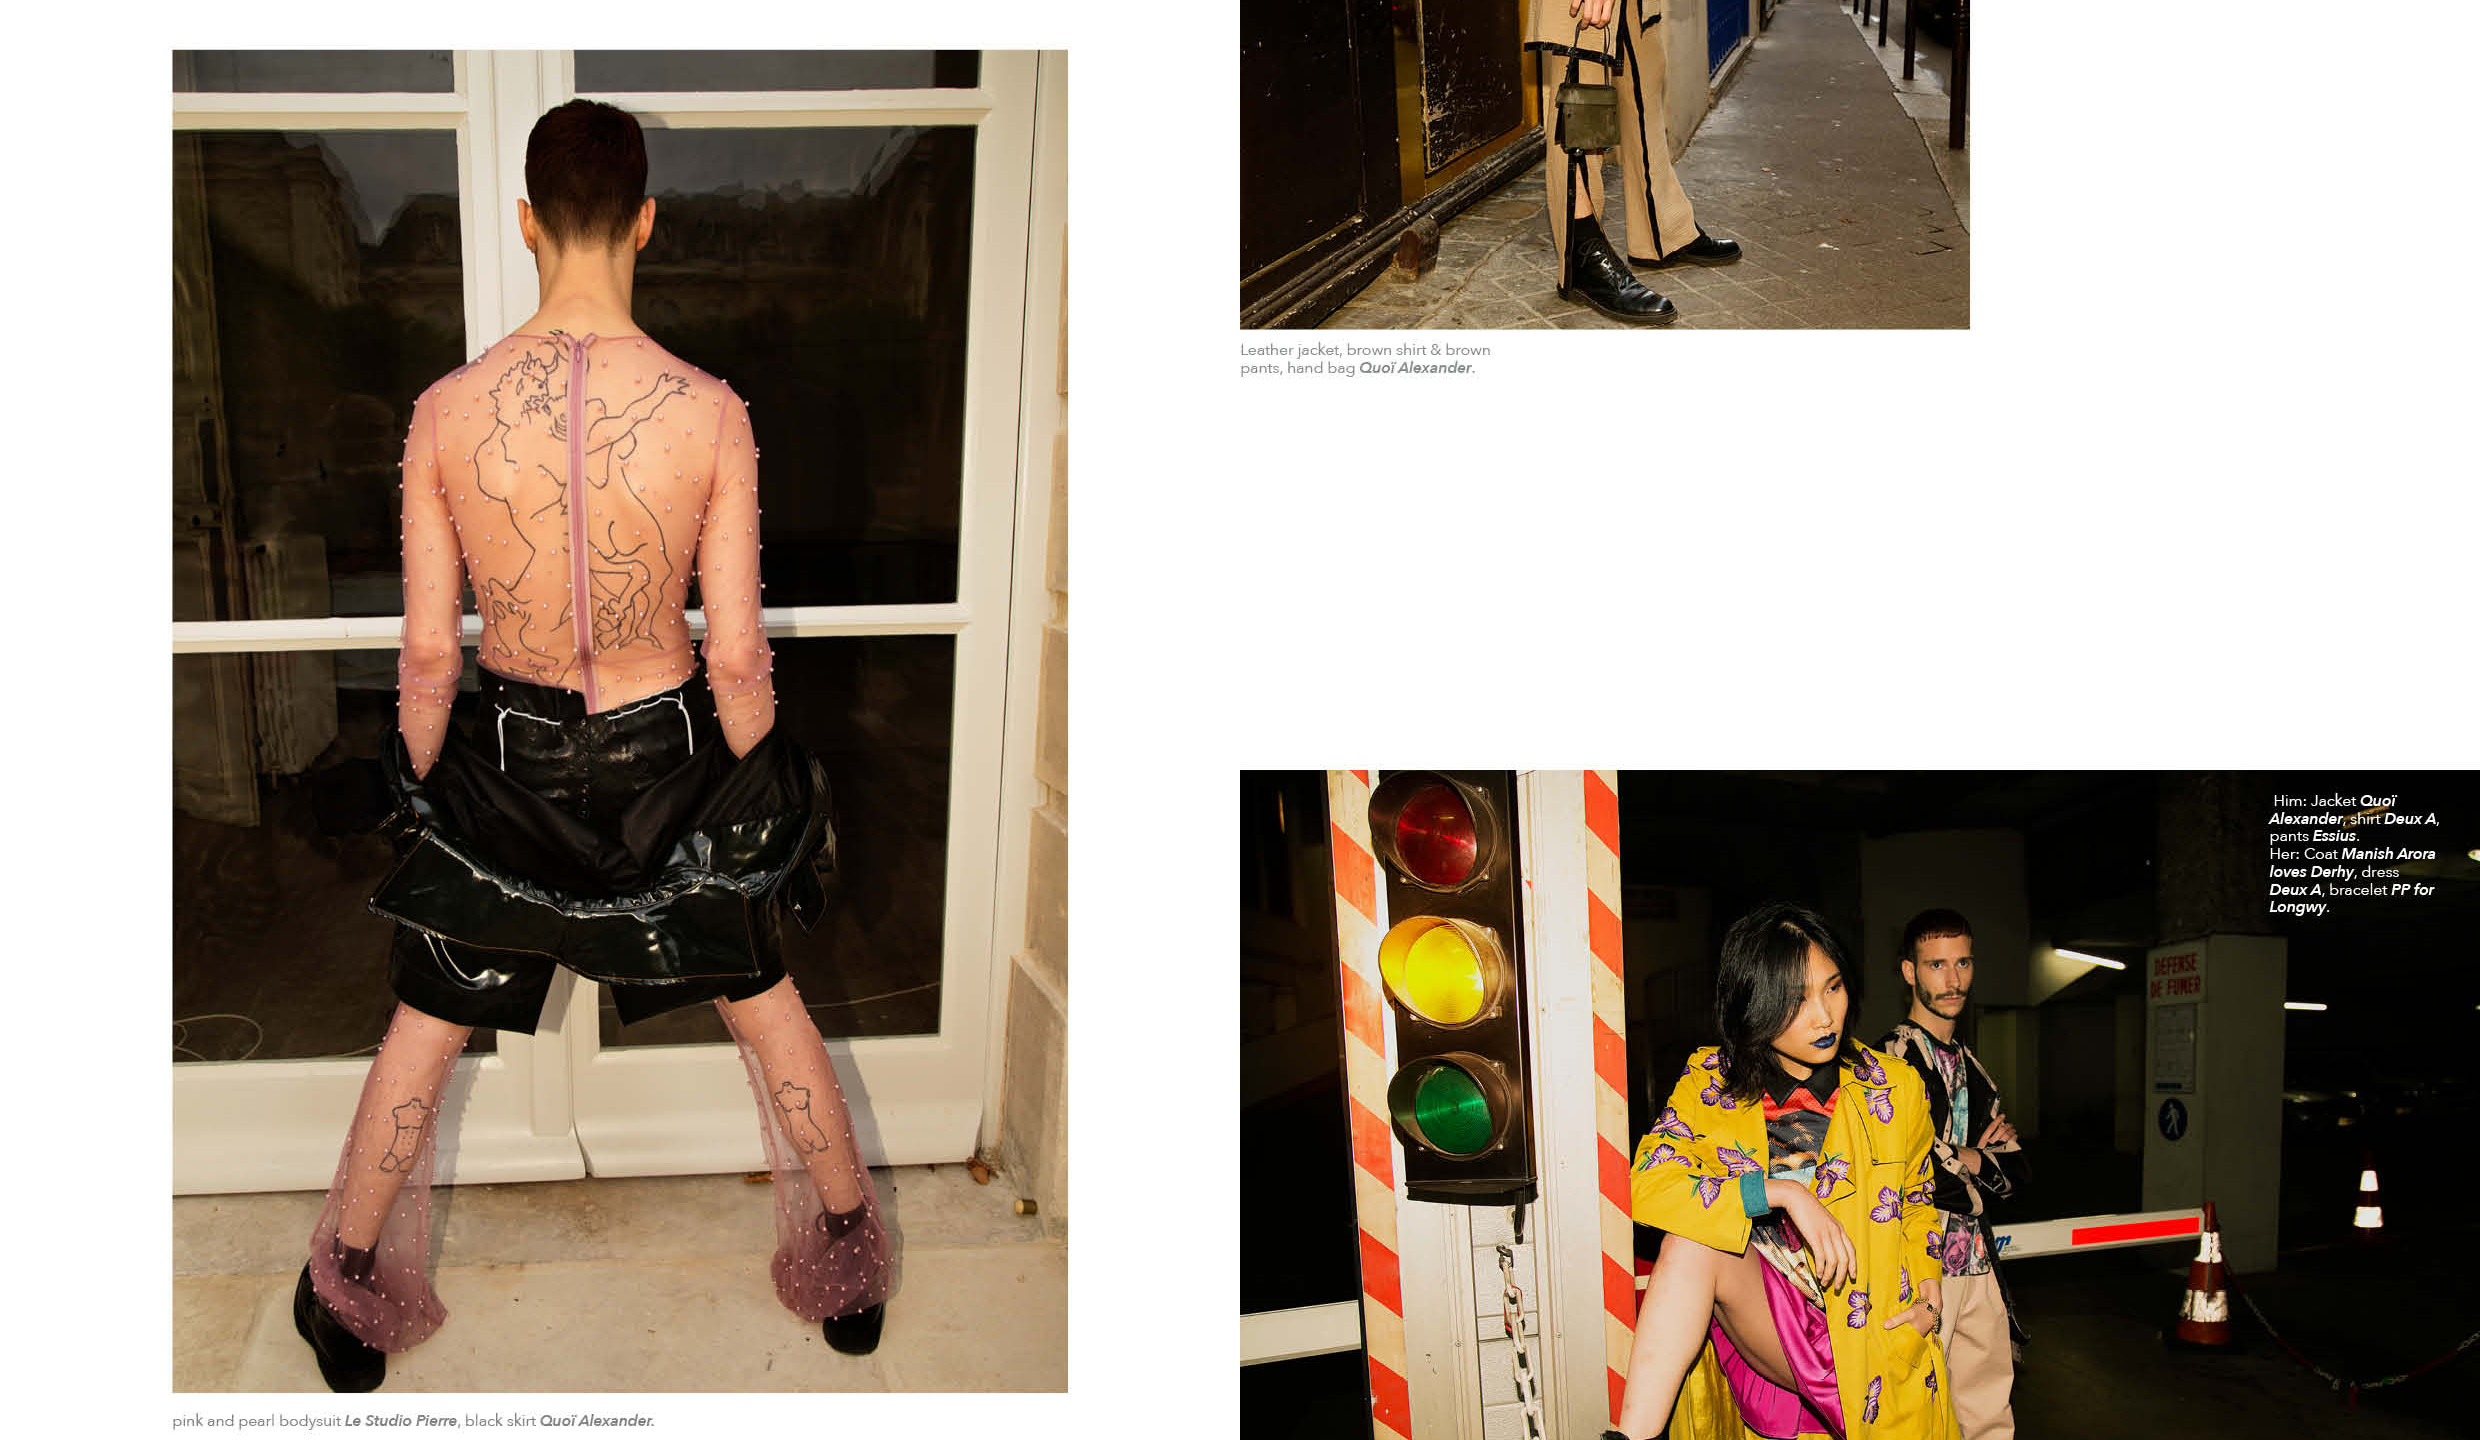 Left : pink and pearl bodysuit Le Studio Pierre, black skirt Quoï Alexander  Top right : Leather jacket, brown shirt & brown pants, hand bag Quoï Alexander.  Right bottom :  Him: Jacket Quoï Alexander, shirt Deux A, pants Essius. Her: Coat Manish Arora loves Derhy, dress Deux A, bracelet PP for Longwy